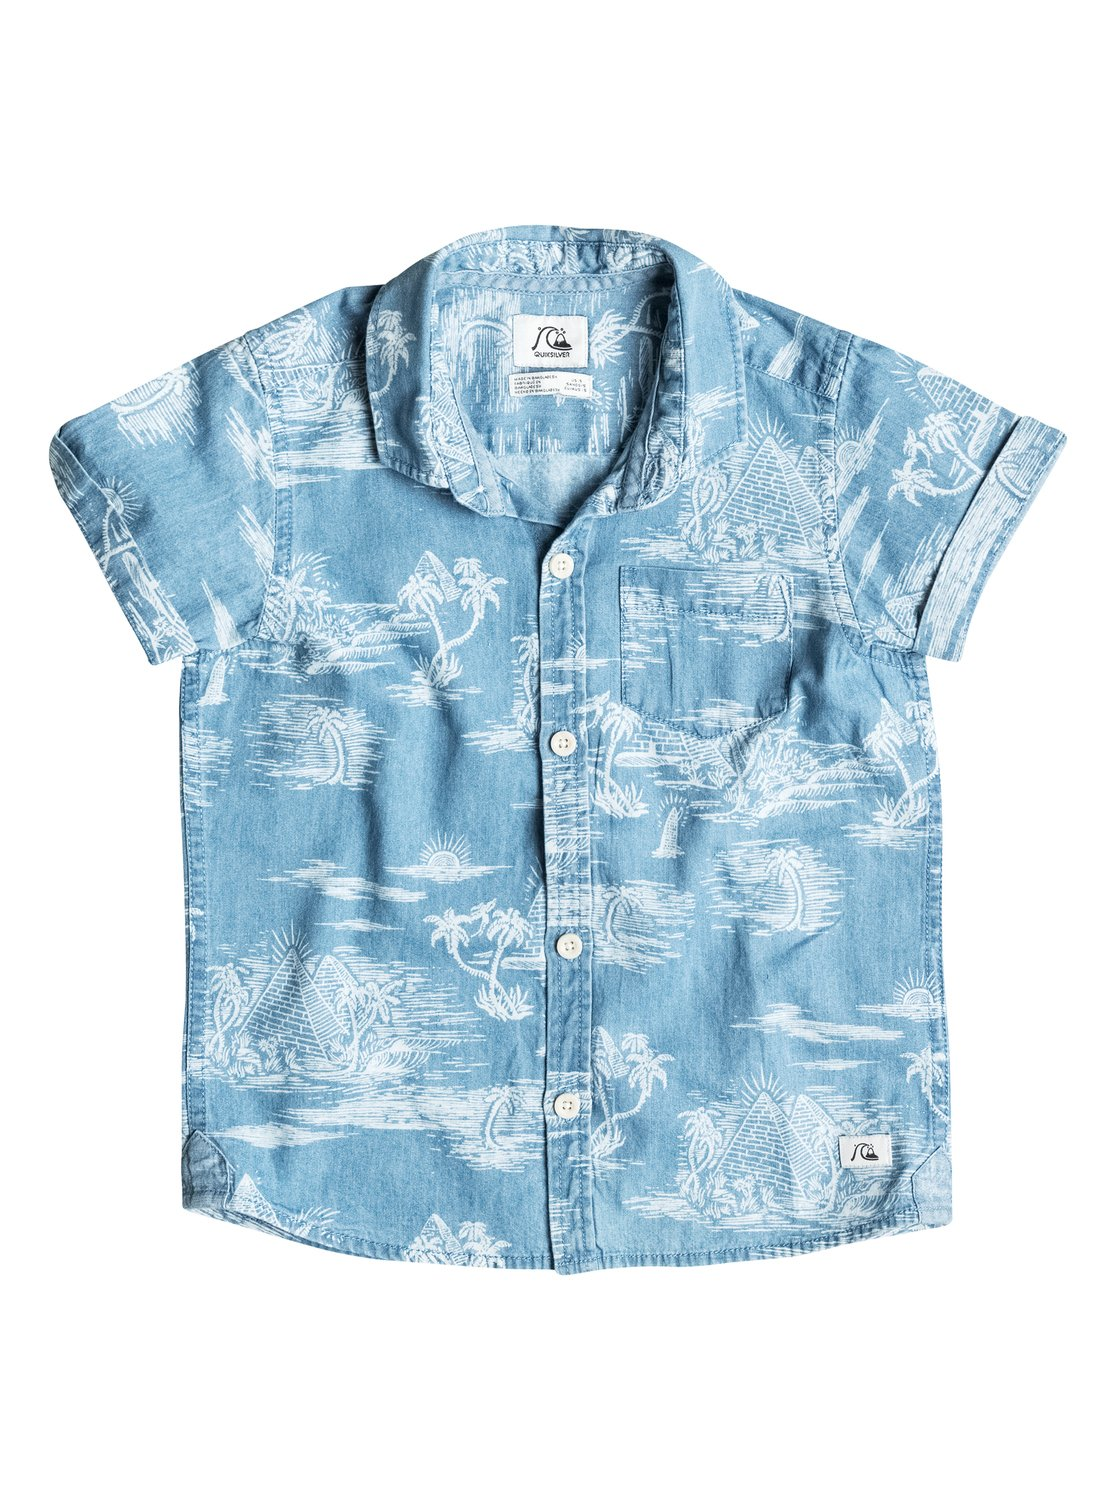 Quiksilver Boy's Pyramid Point Short Sleeve Shirt